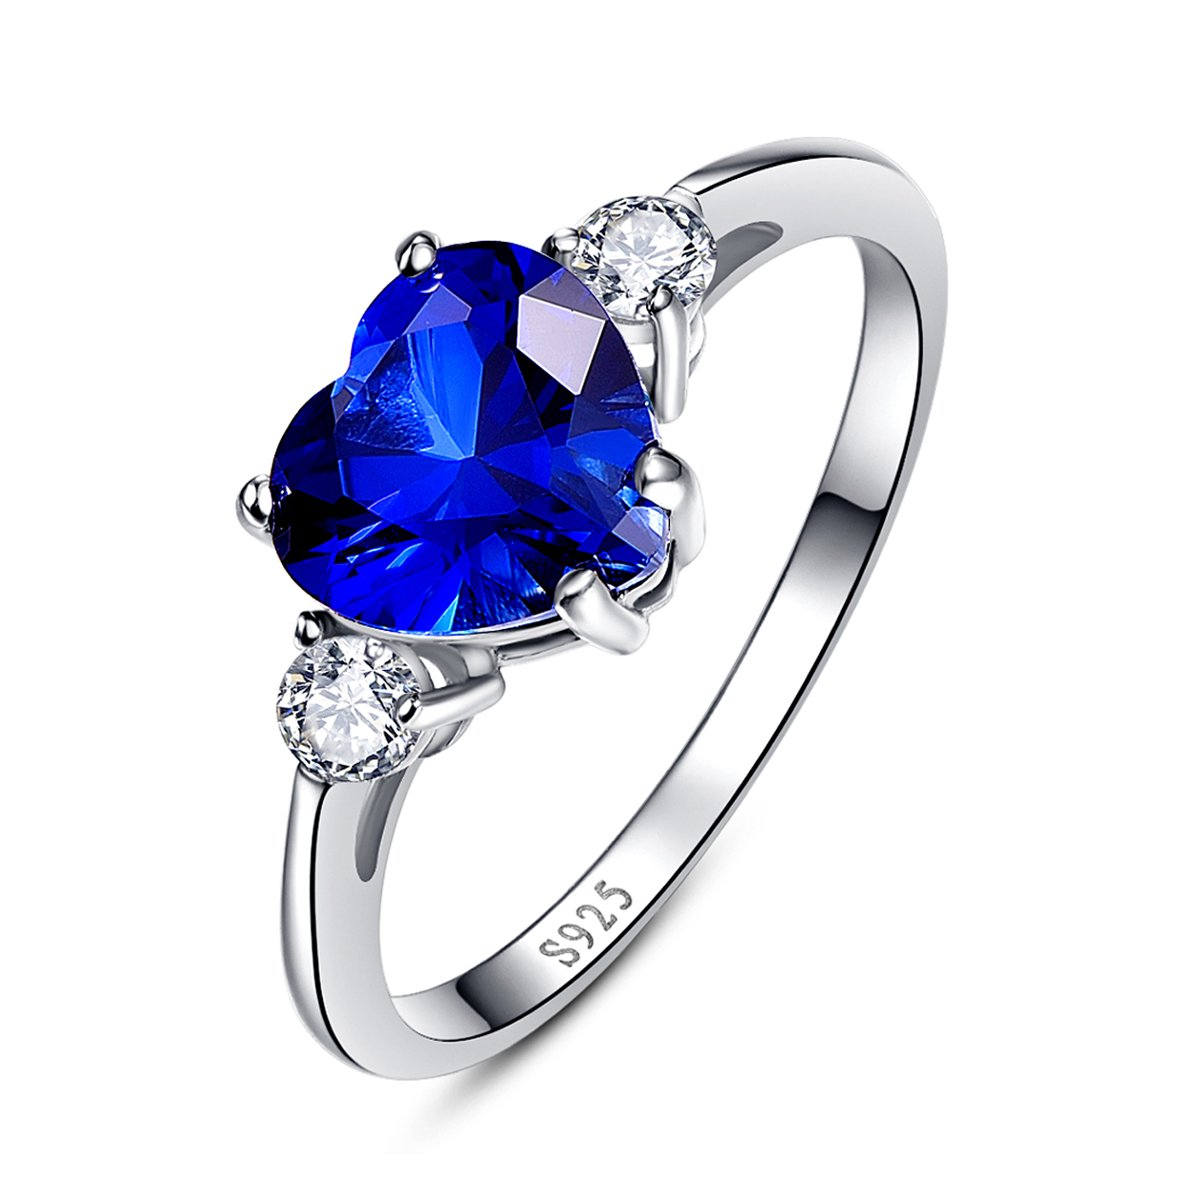 BONLAVIE Women's Heart Shaped Promise Ring Band 925 Sterling Silver with CZ Cubic Zirconia Size 7